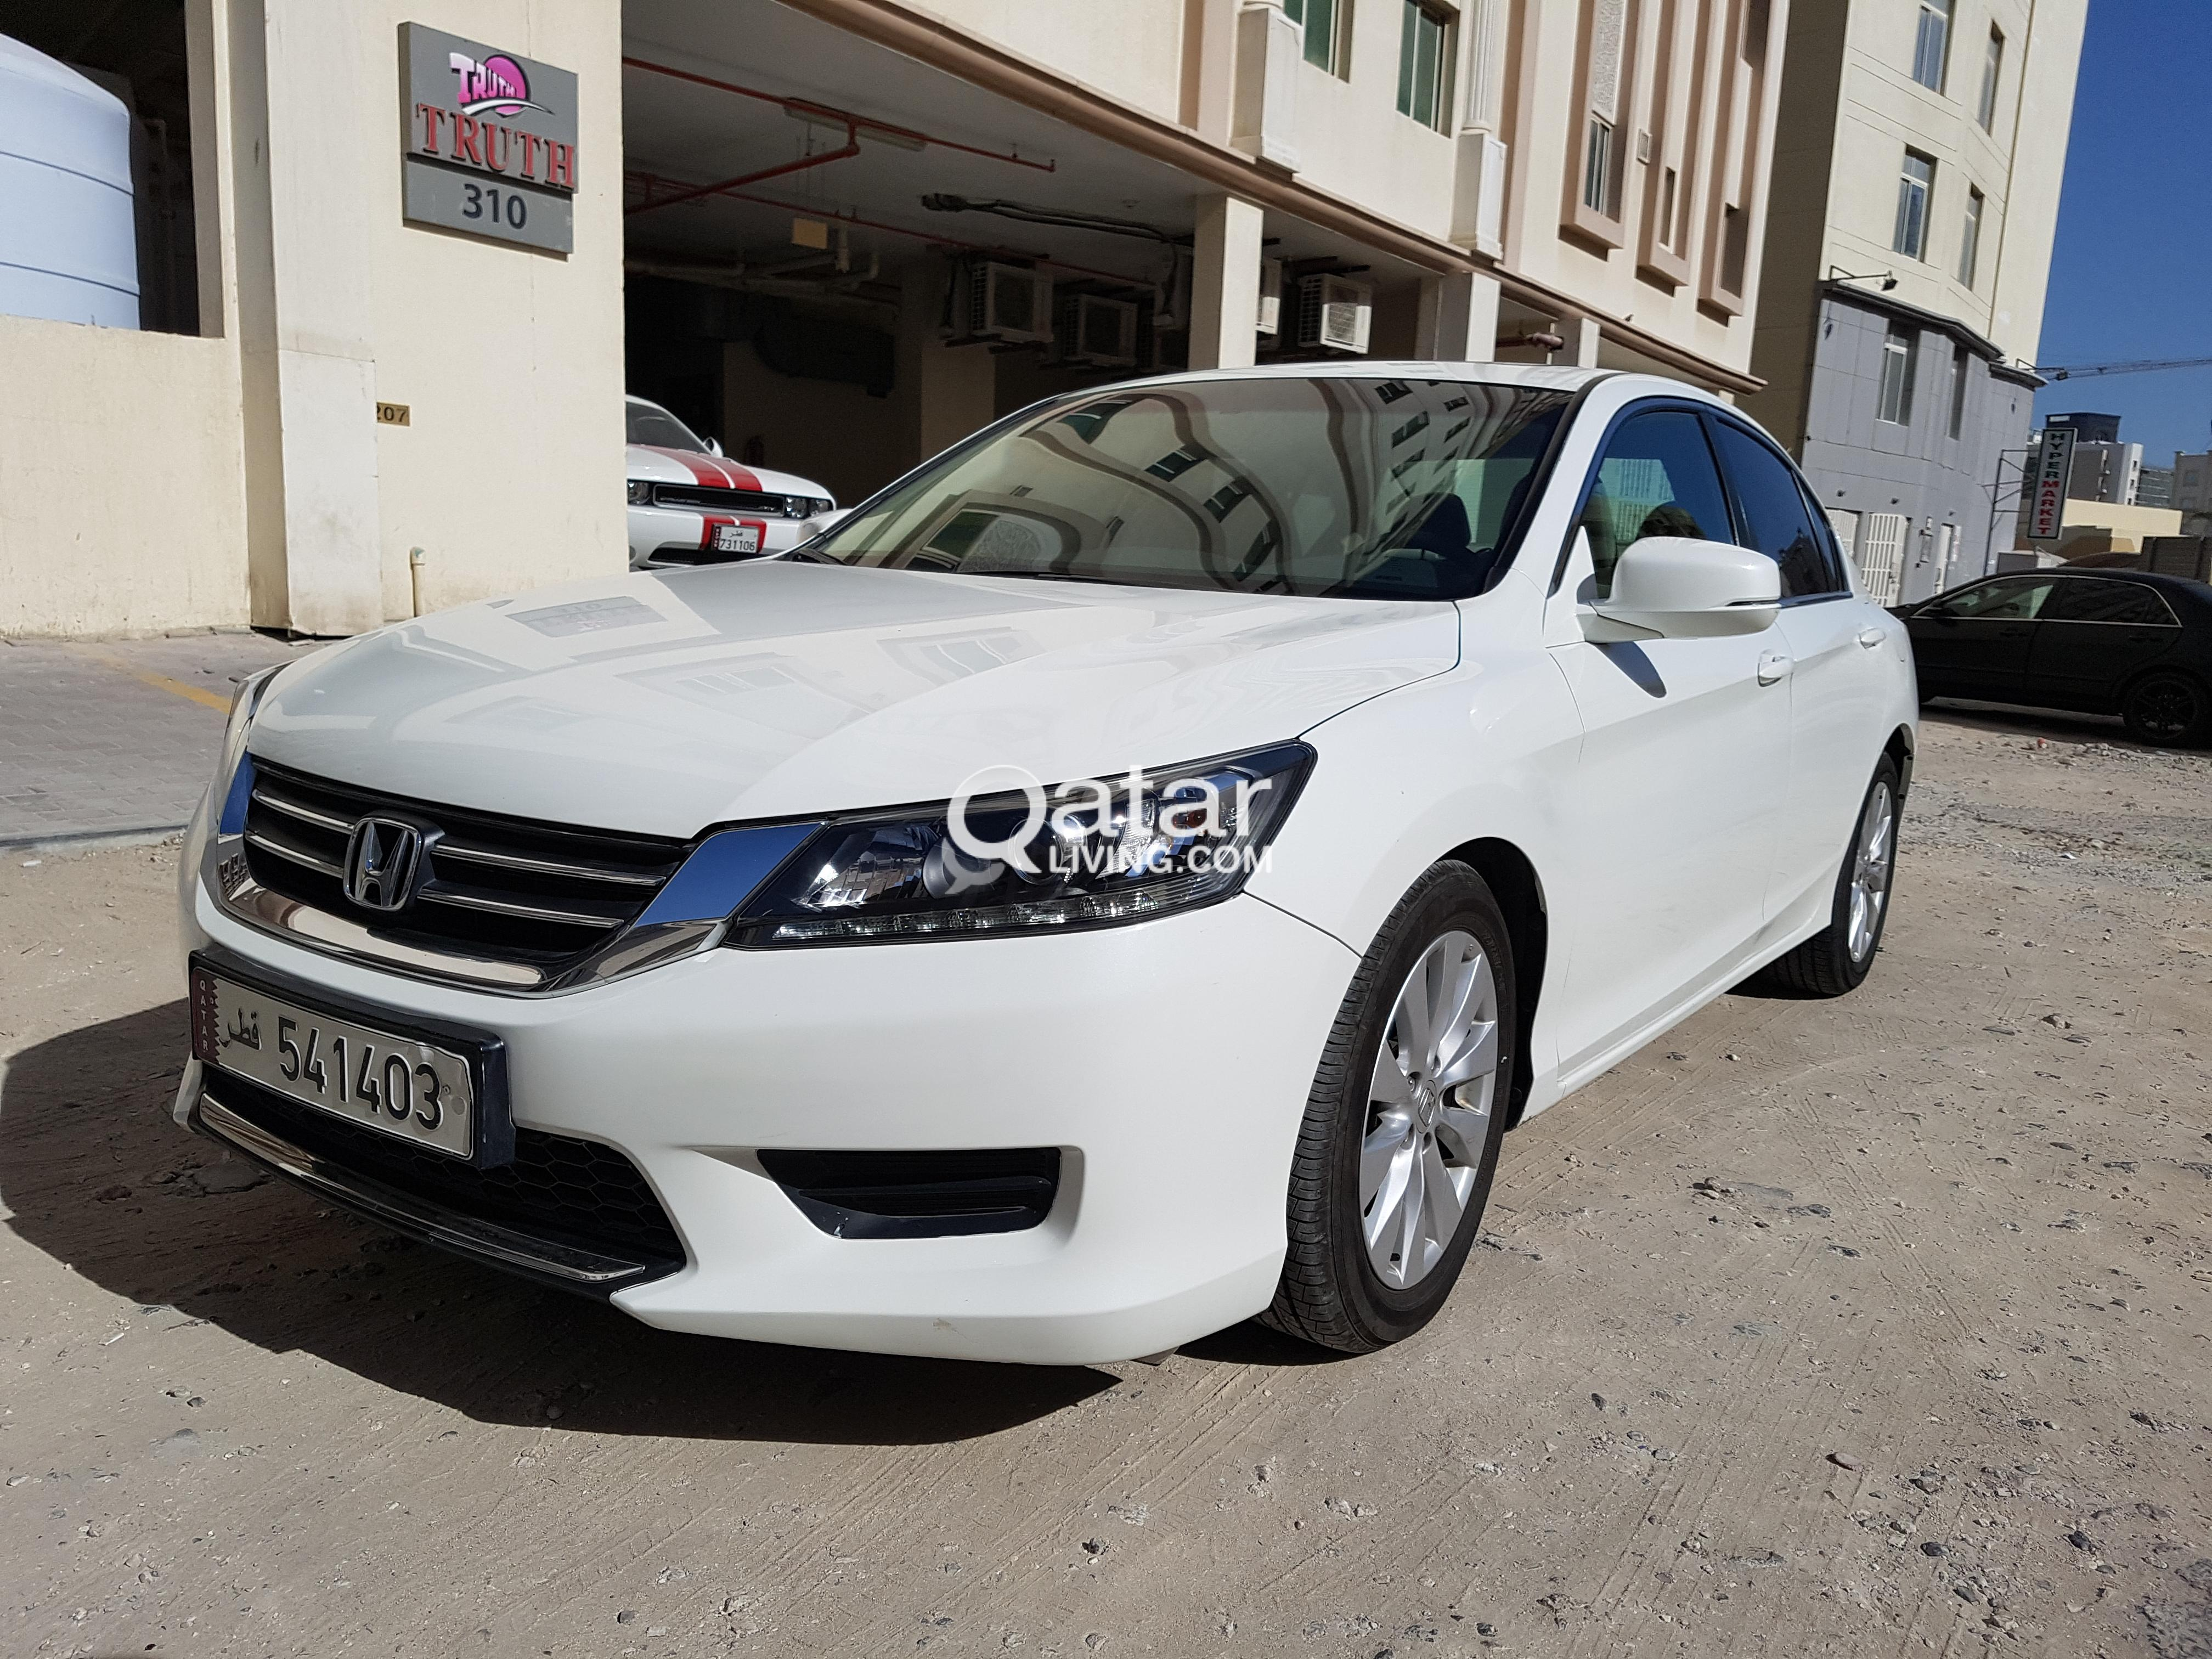 sdn car accord pre sedan freehold owned sport in used fwd honda inventory